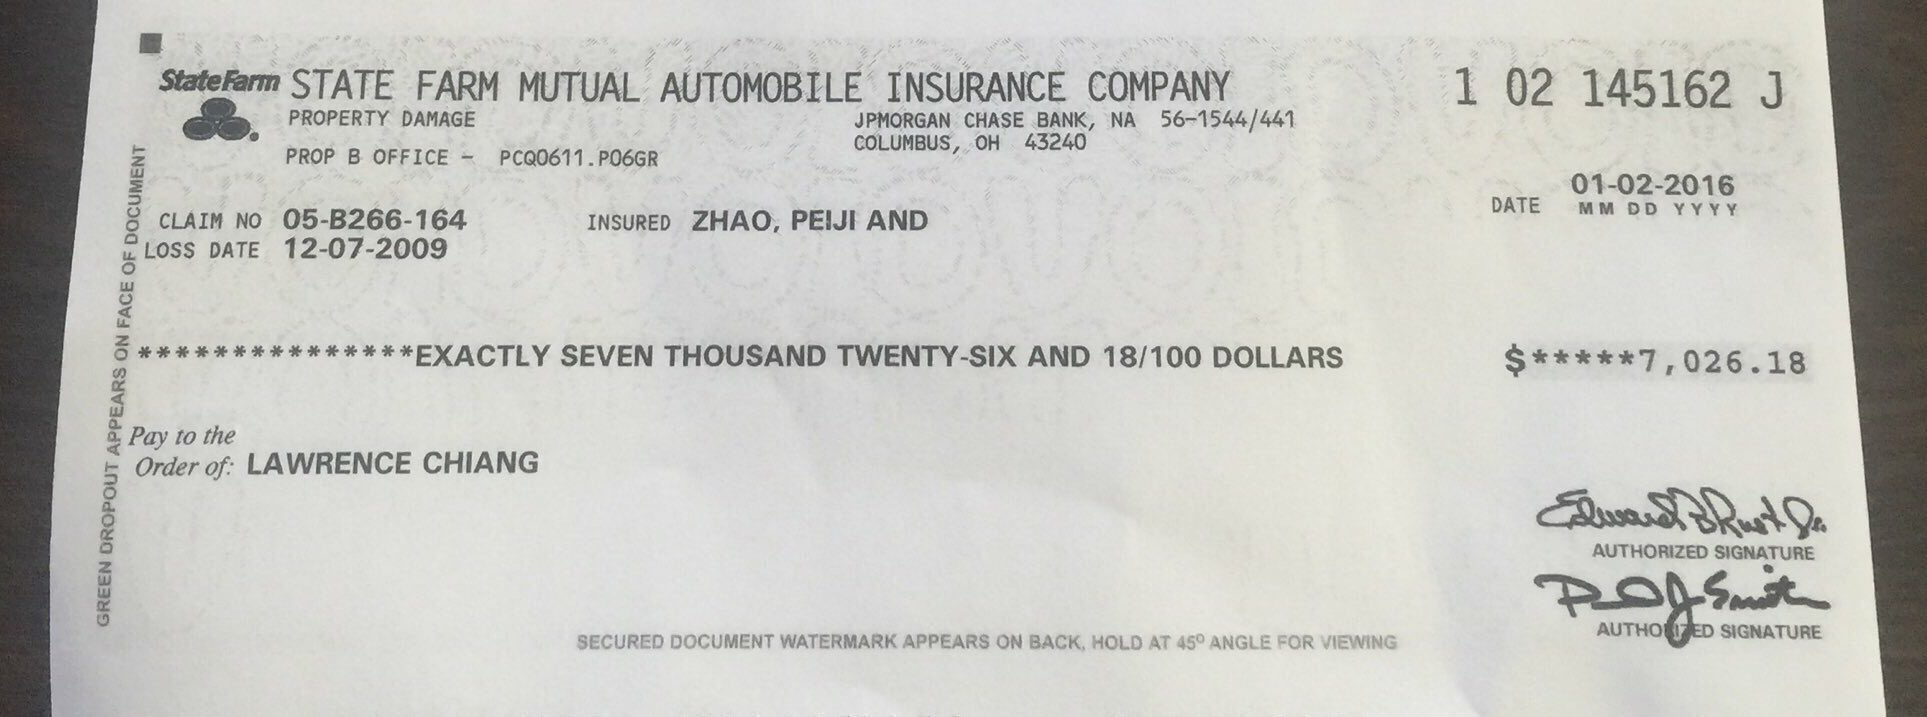 Check cleared Re 12 07 2009 accident Paid January 3 2016